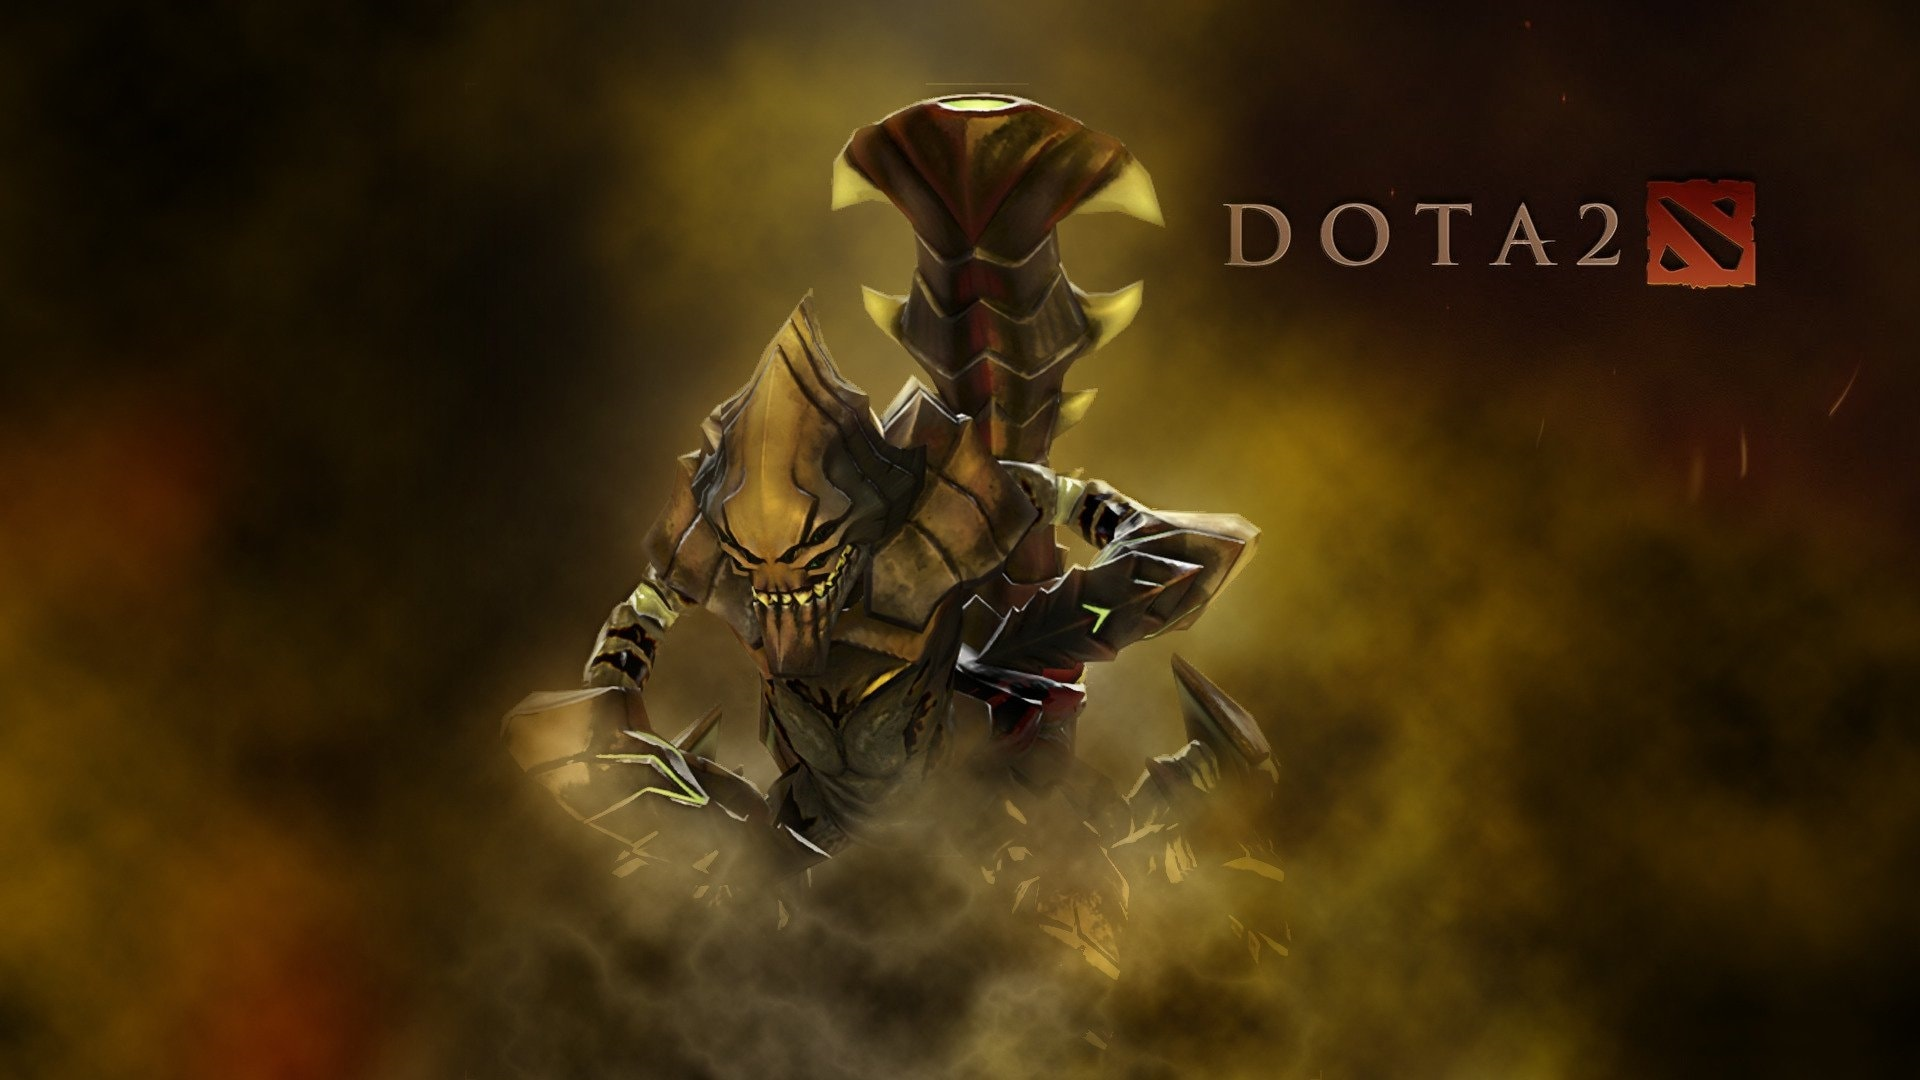 Dota2 : Sand King widescreen